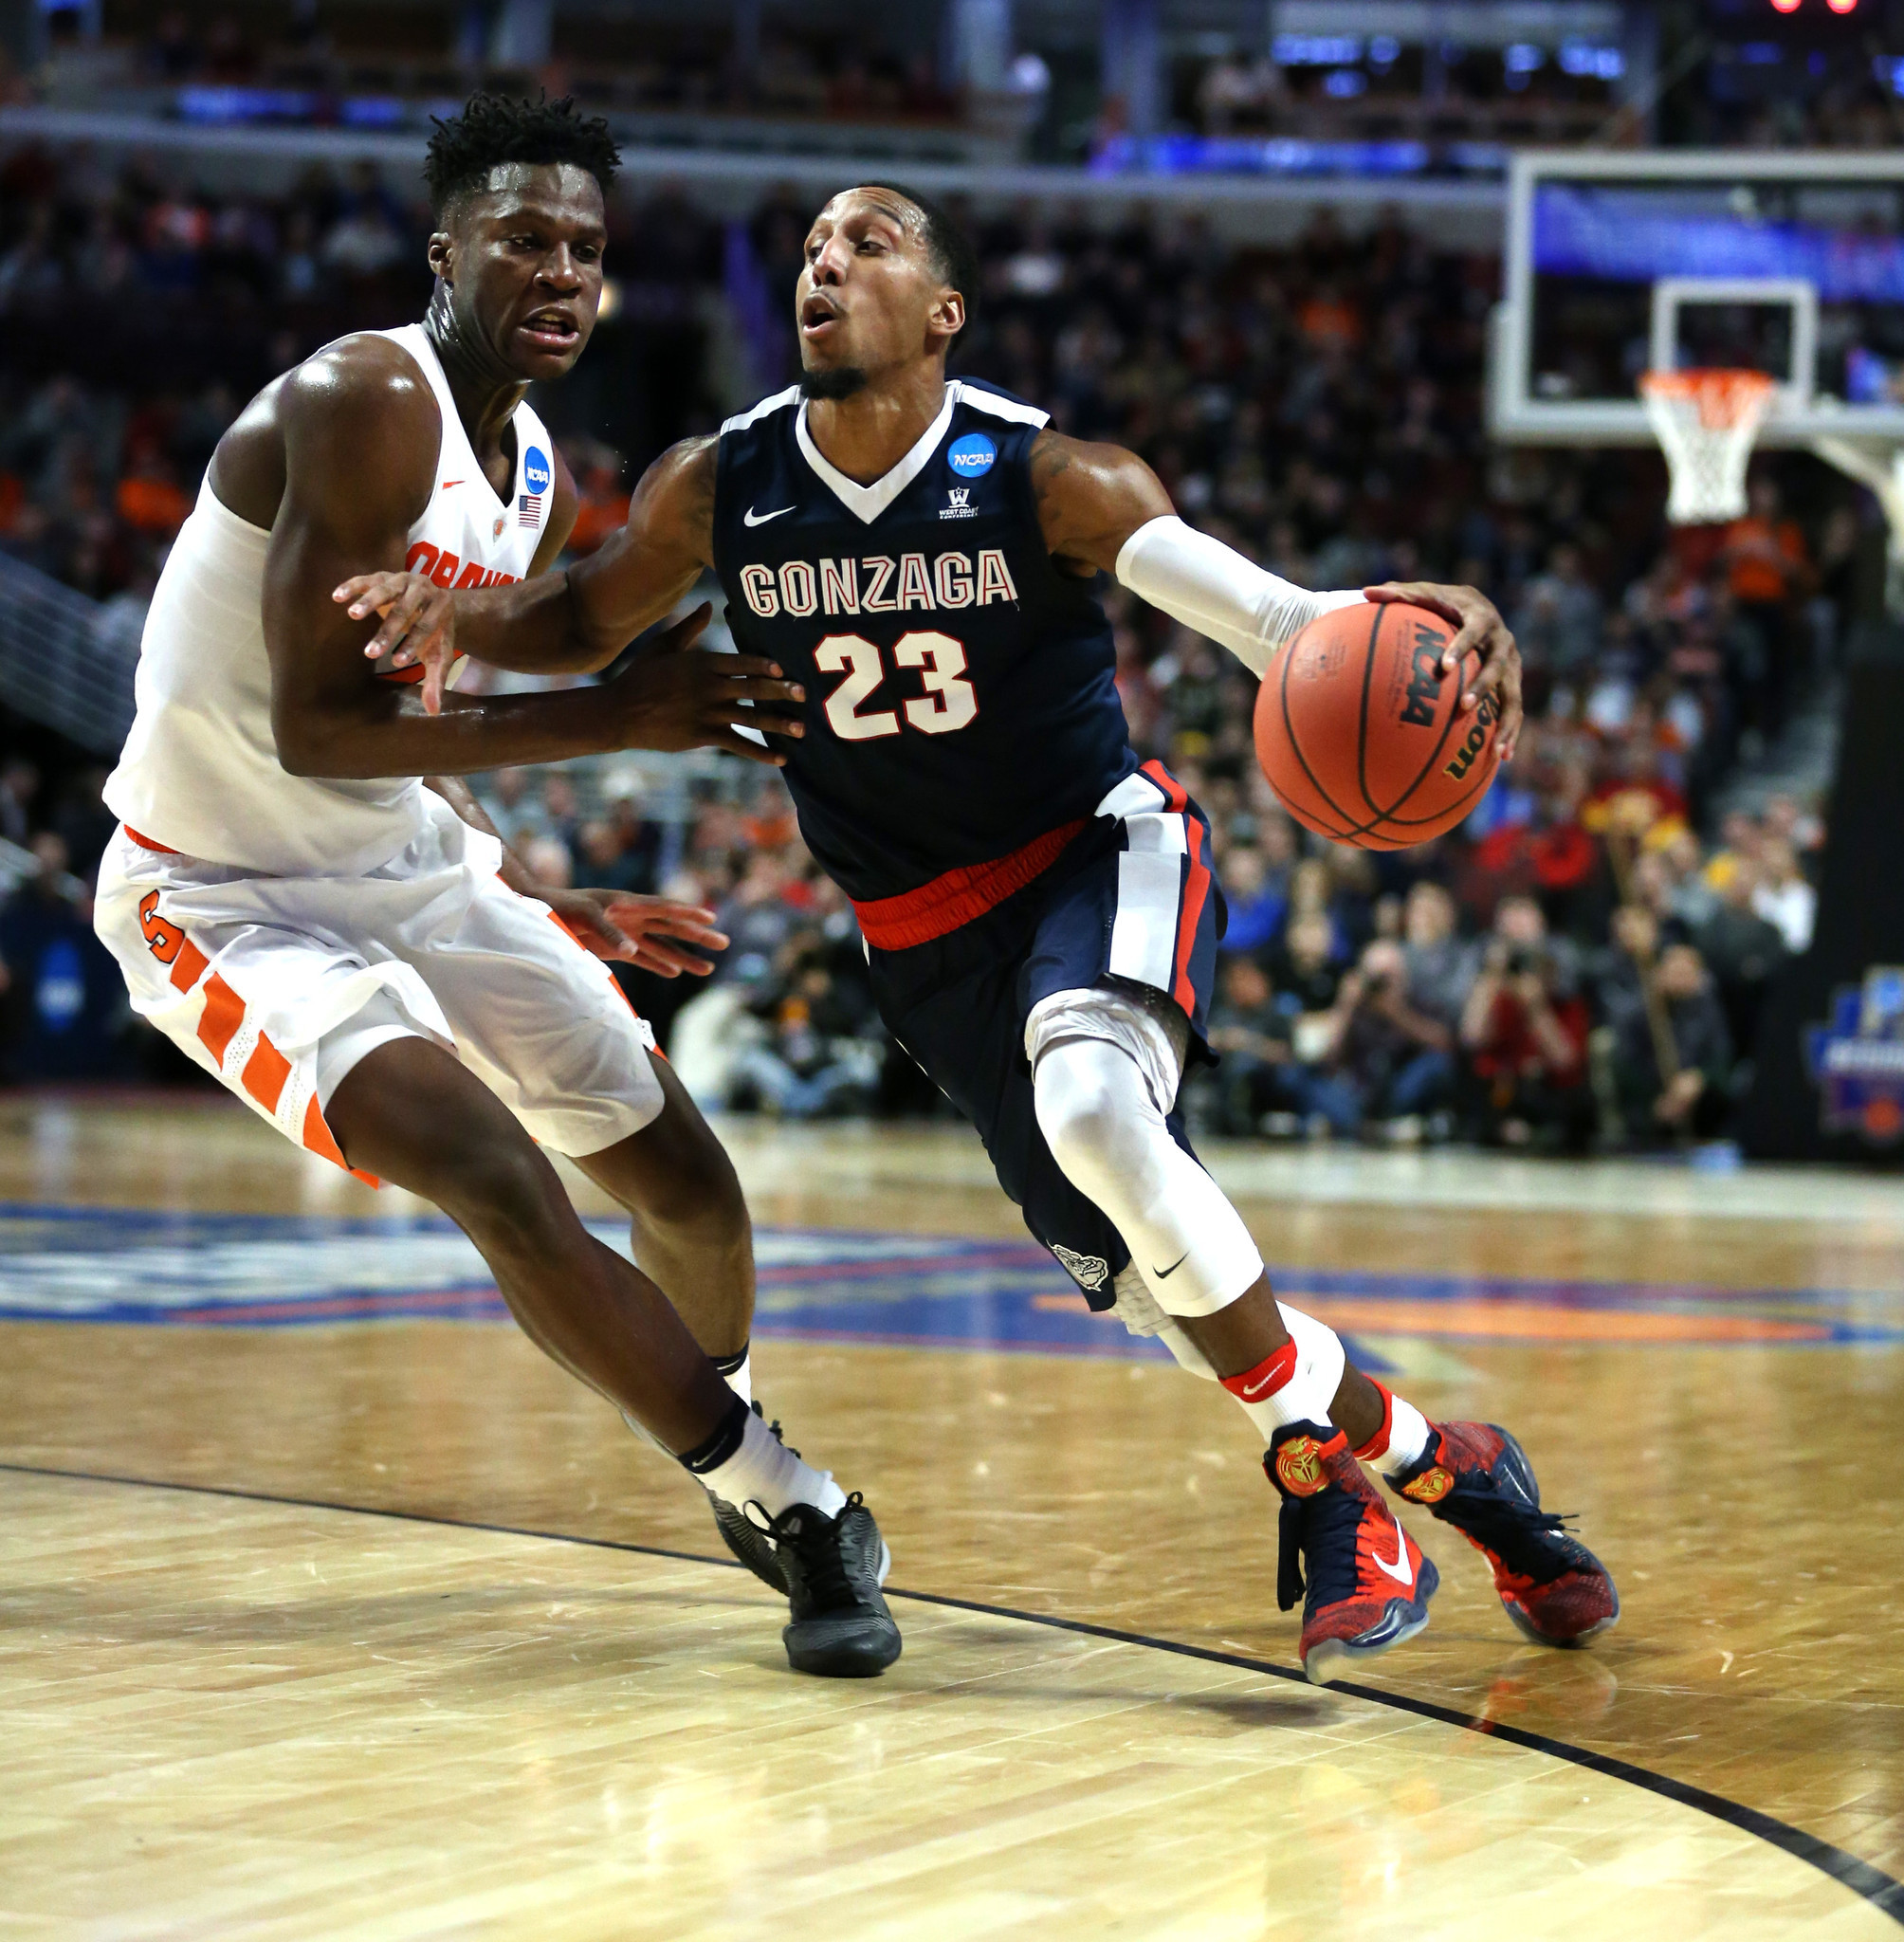 Syracuse takes remarkable path to Final Four